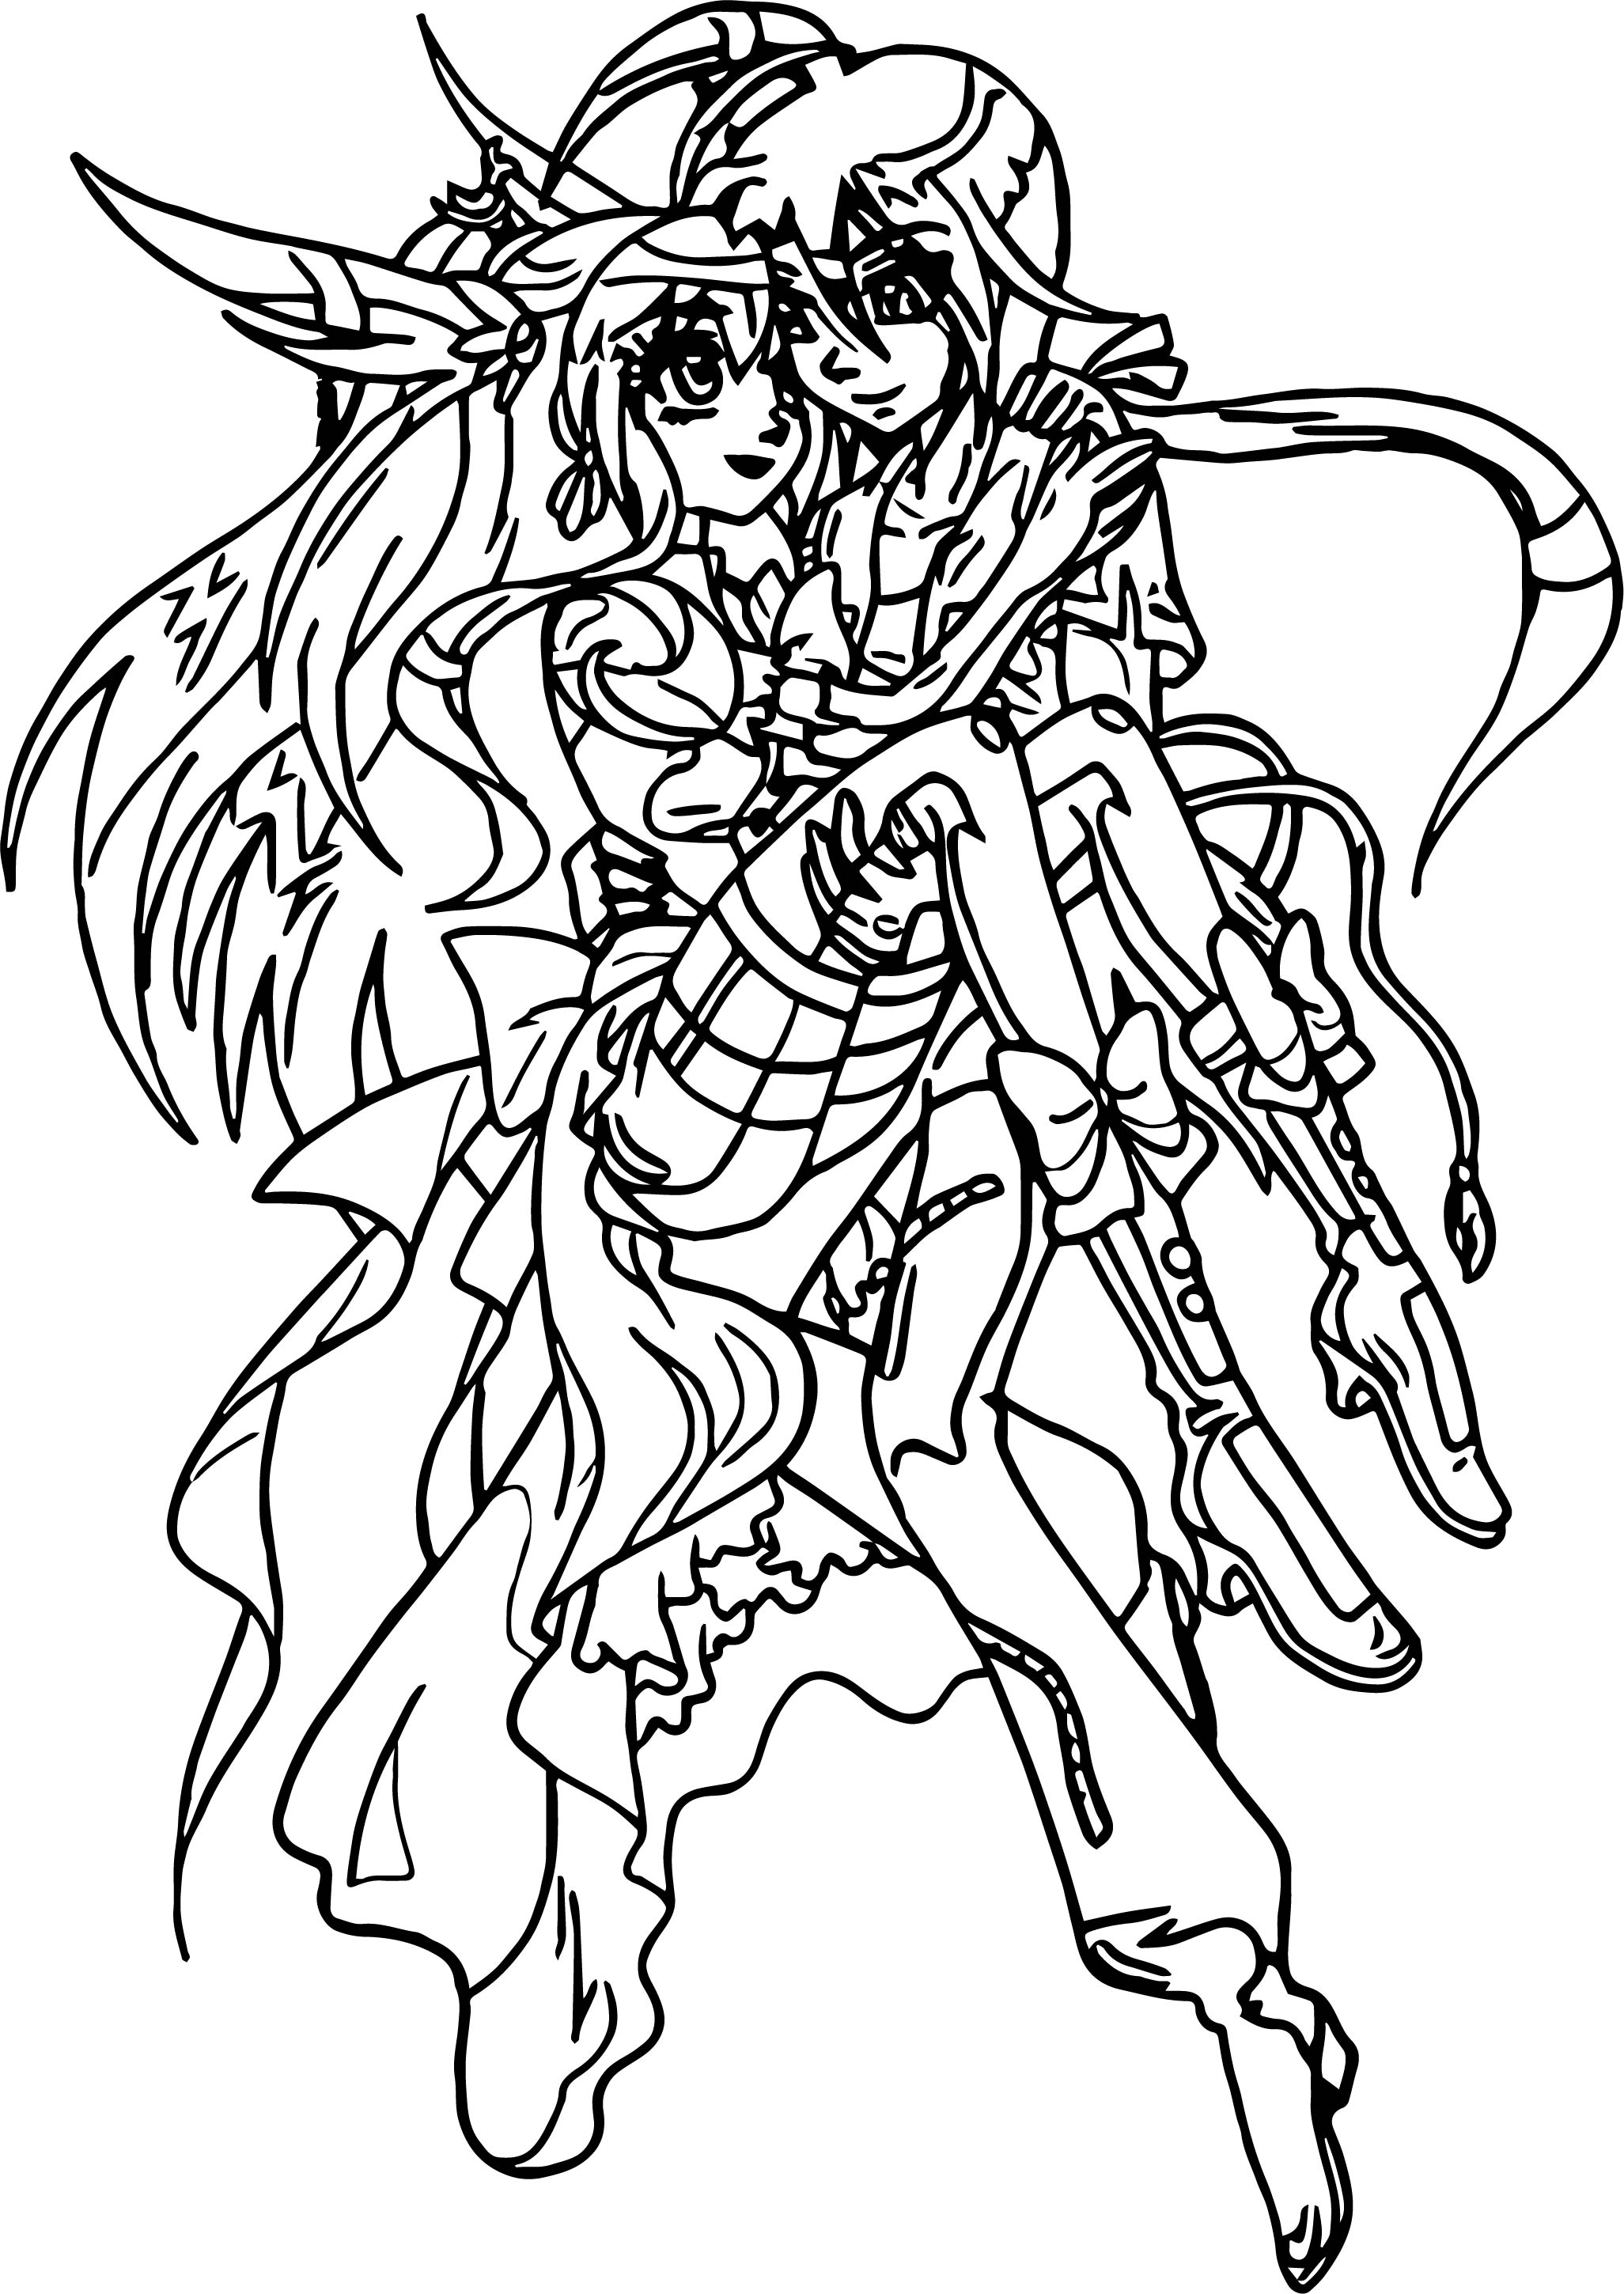 shun and human skyress bakugan girls and boys coloring page - Boys Coloring Pictures